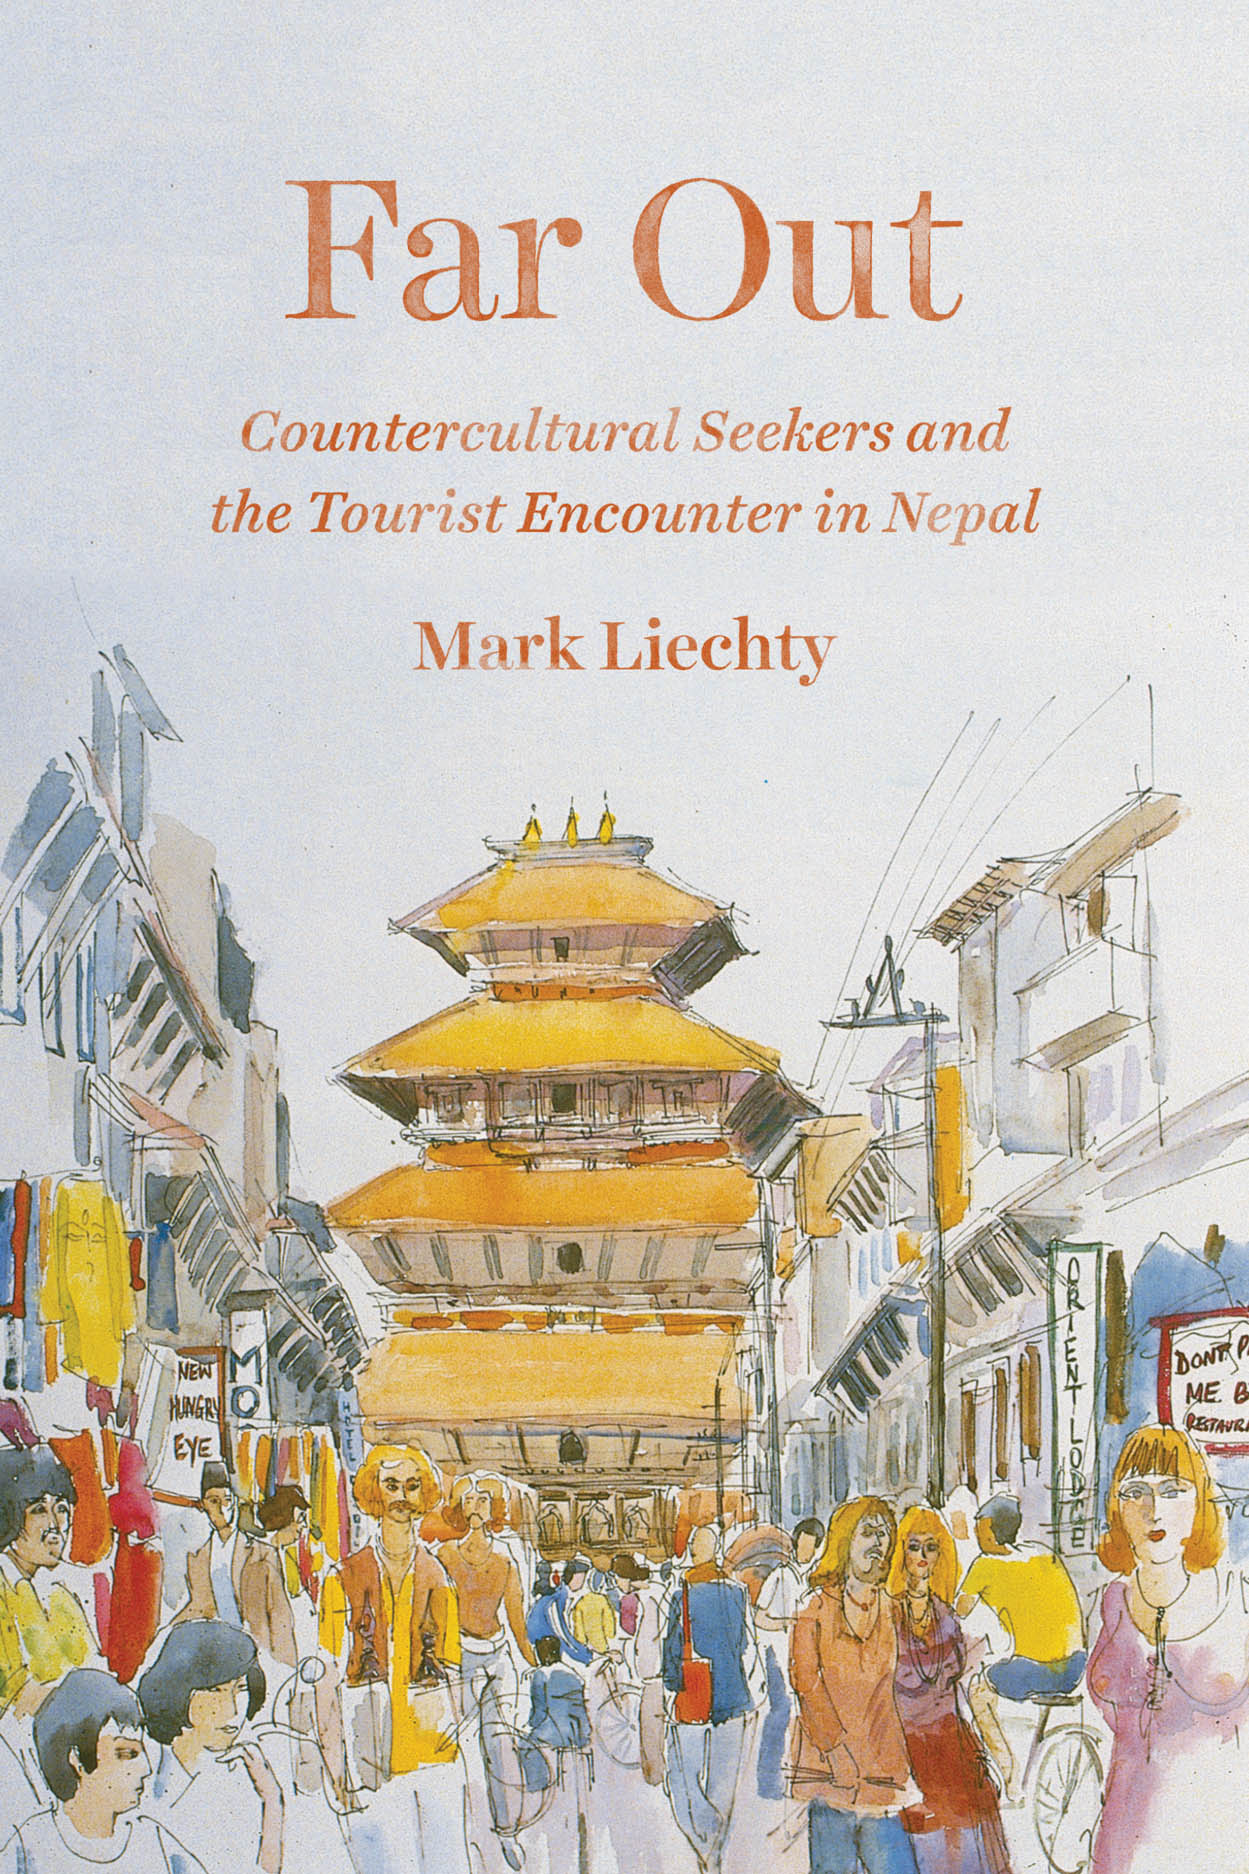 Far Out: Countercultural Seekers and the Tourist Encounter in Nepal